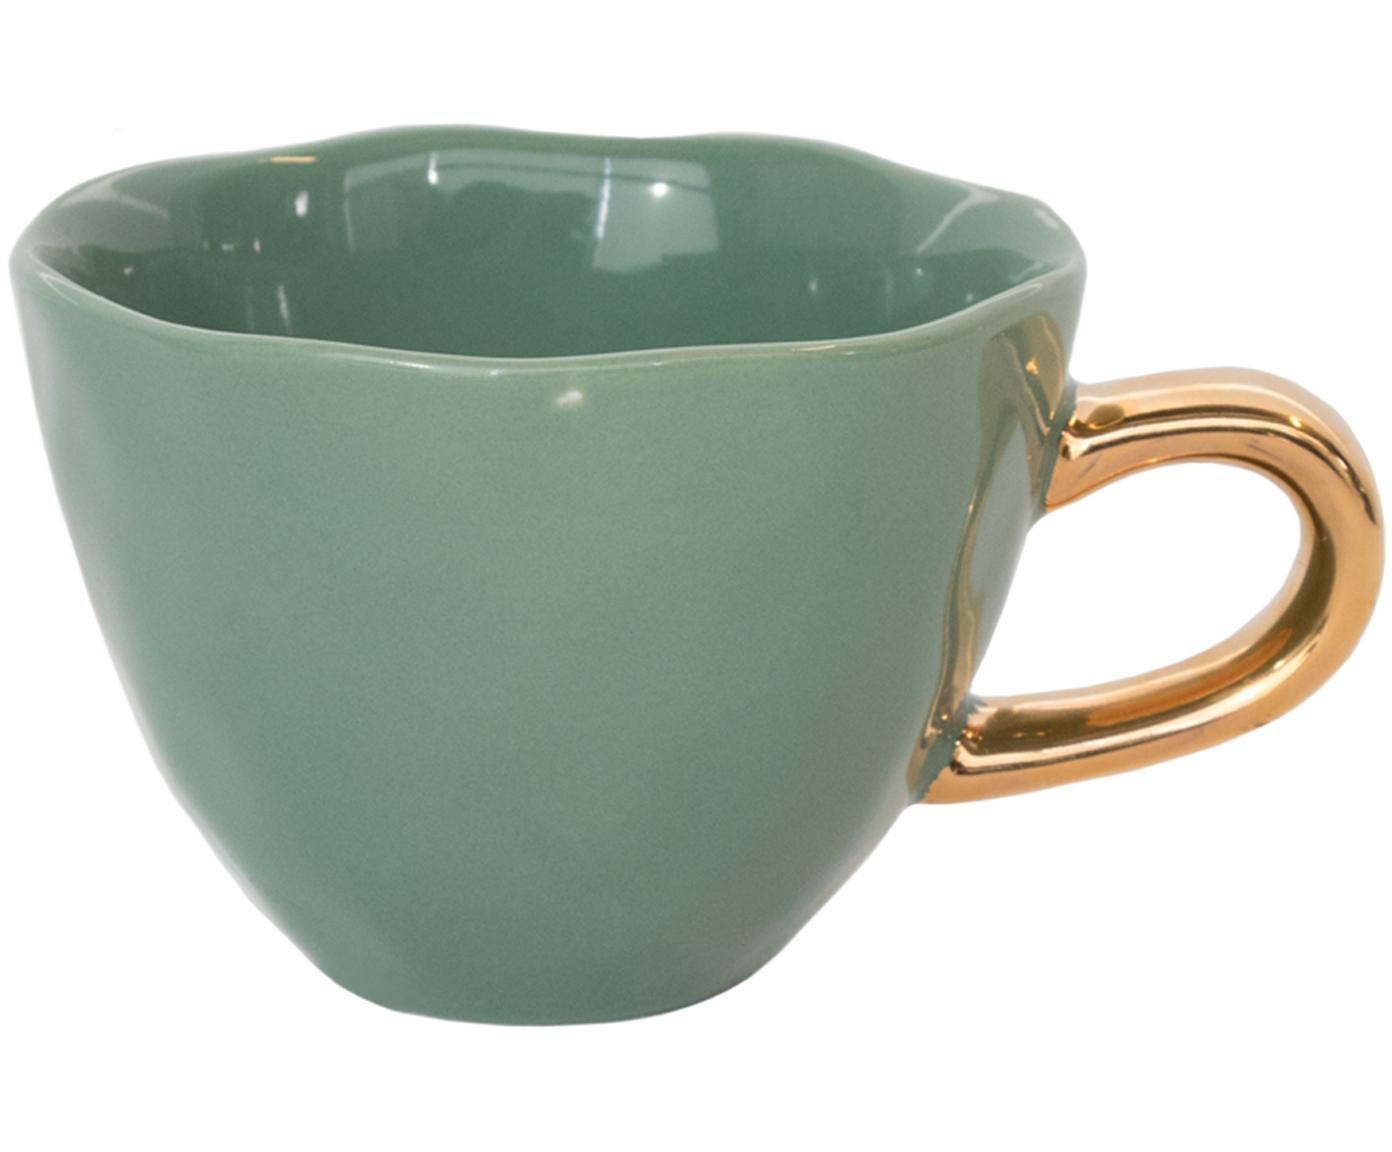 Tazza con manico dorato Good Morning, Terracotta, Verde scuro, dorato, Ø 11 x Alt. 8 cm